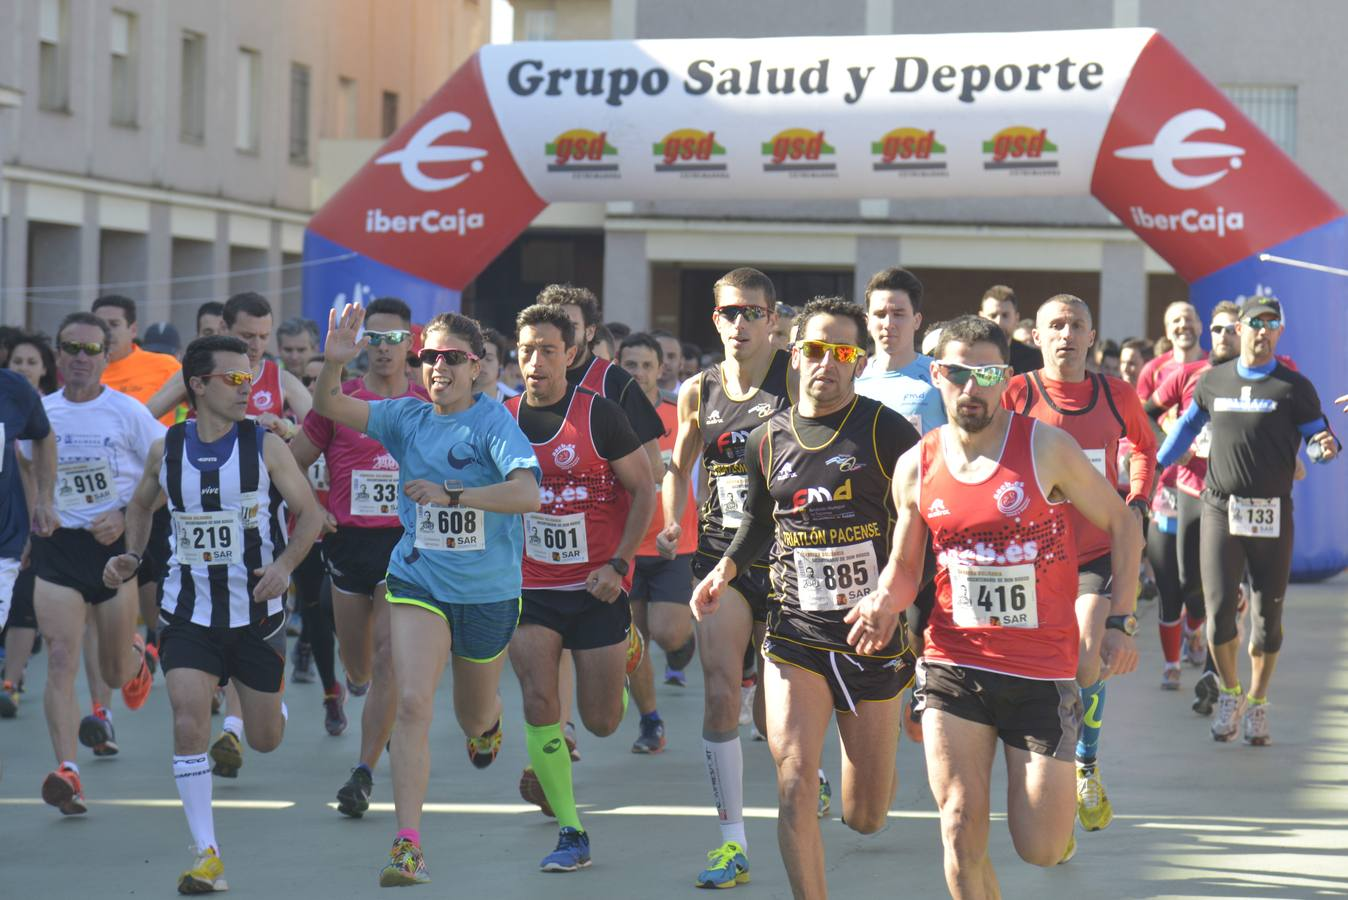 Carrera solidaria Don Bosco